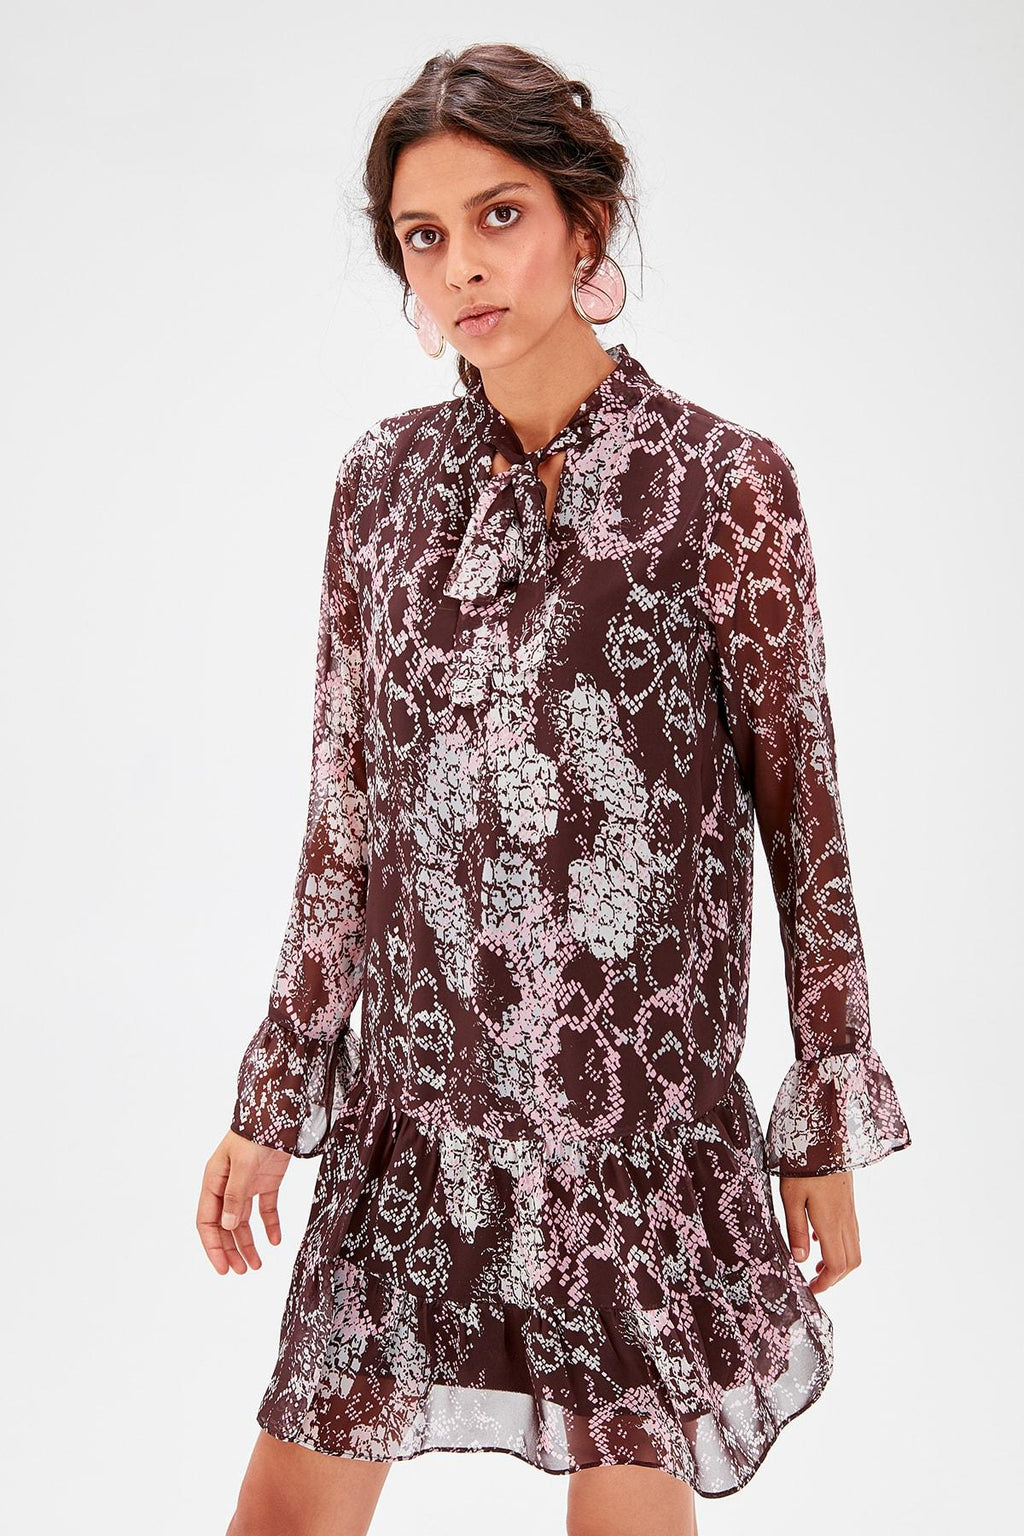 Brown Print Dress